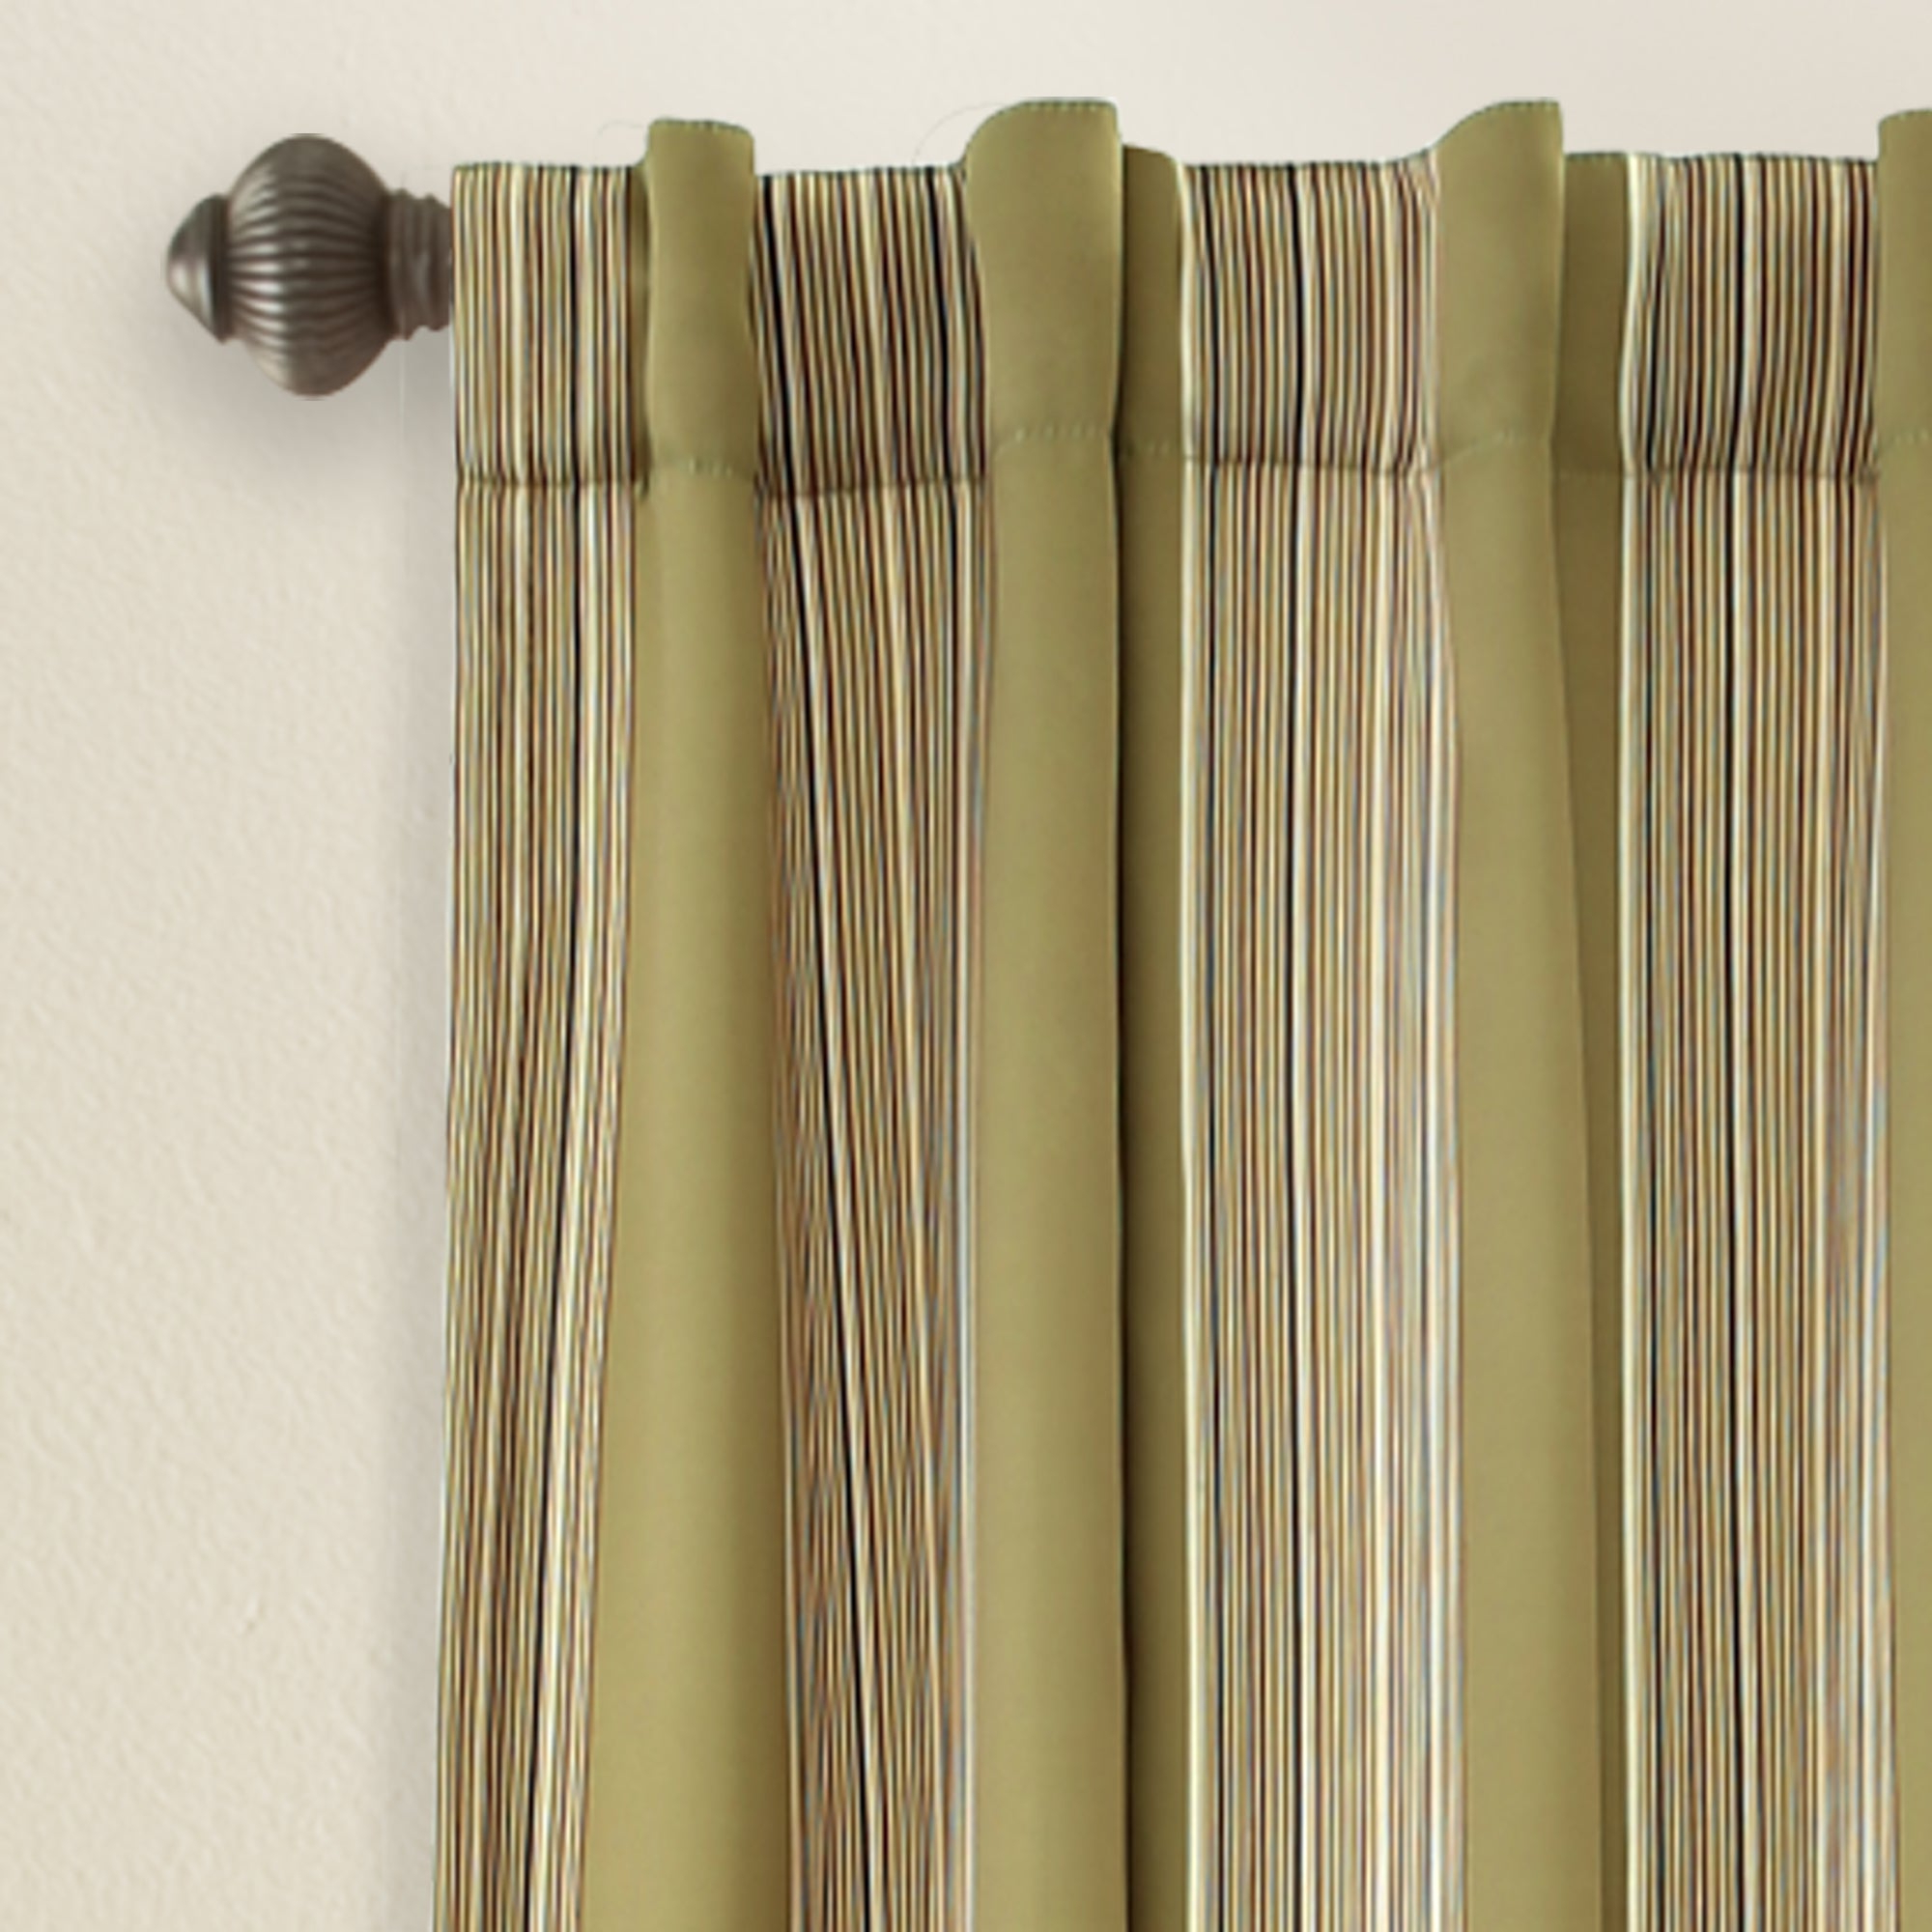 "Julia Striped Room Darkening Window Curtain Panel Pairs Regarding 2020 Lush Decor Julia Striped Room Darkening Window Curtain Panel Pair – 52""w X 84""l (Gallery 3 of 20)"